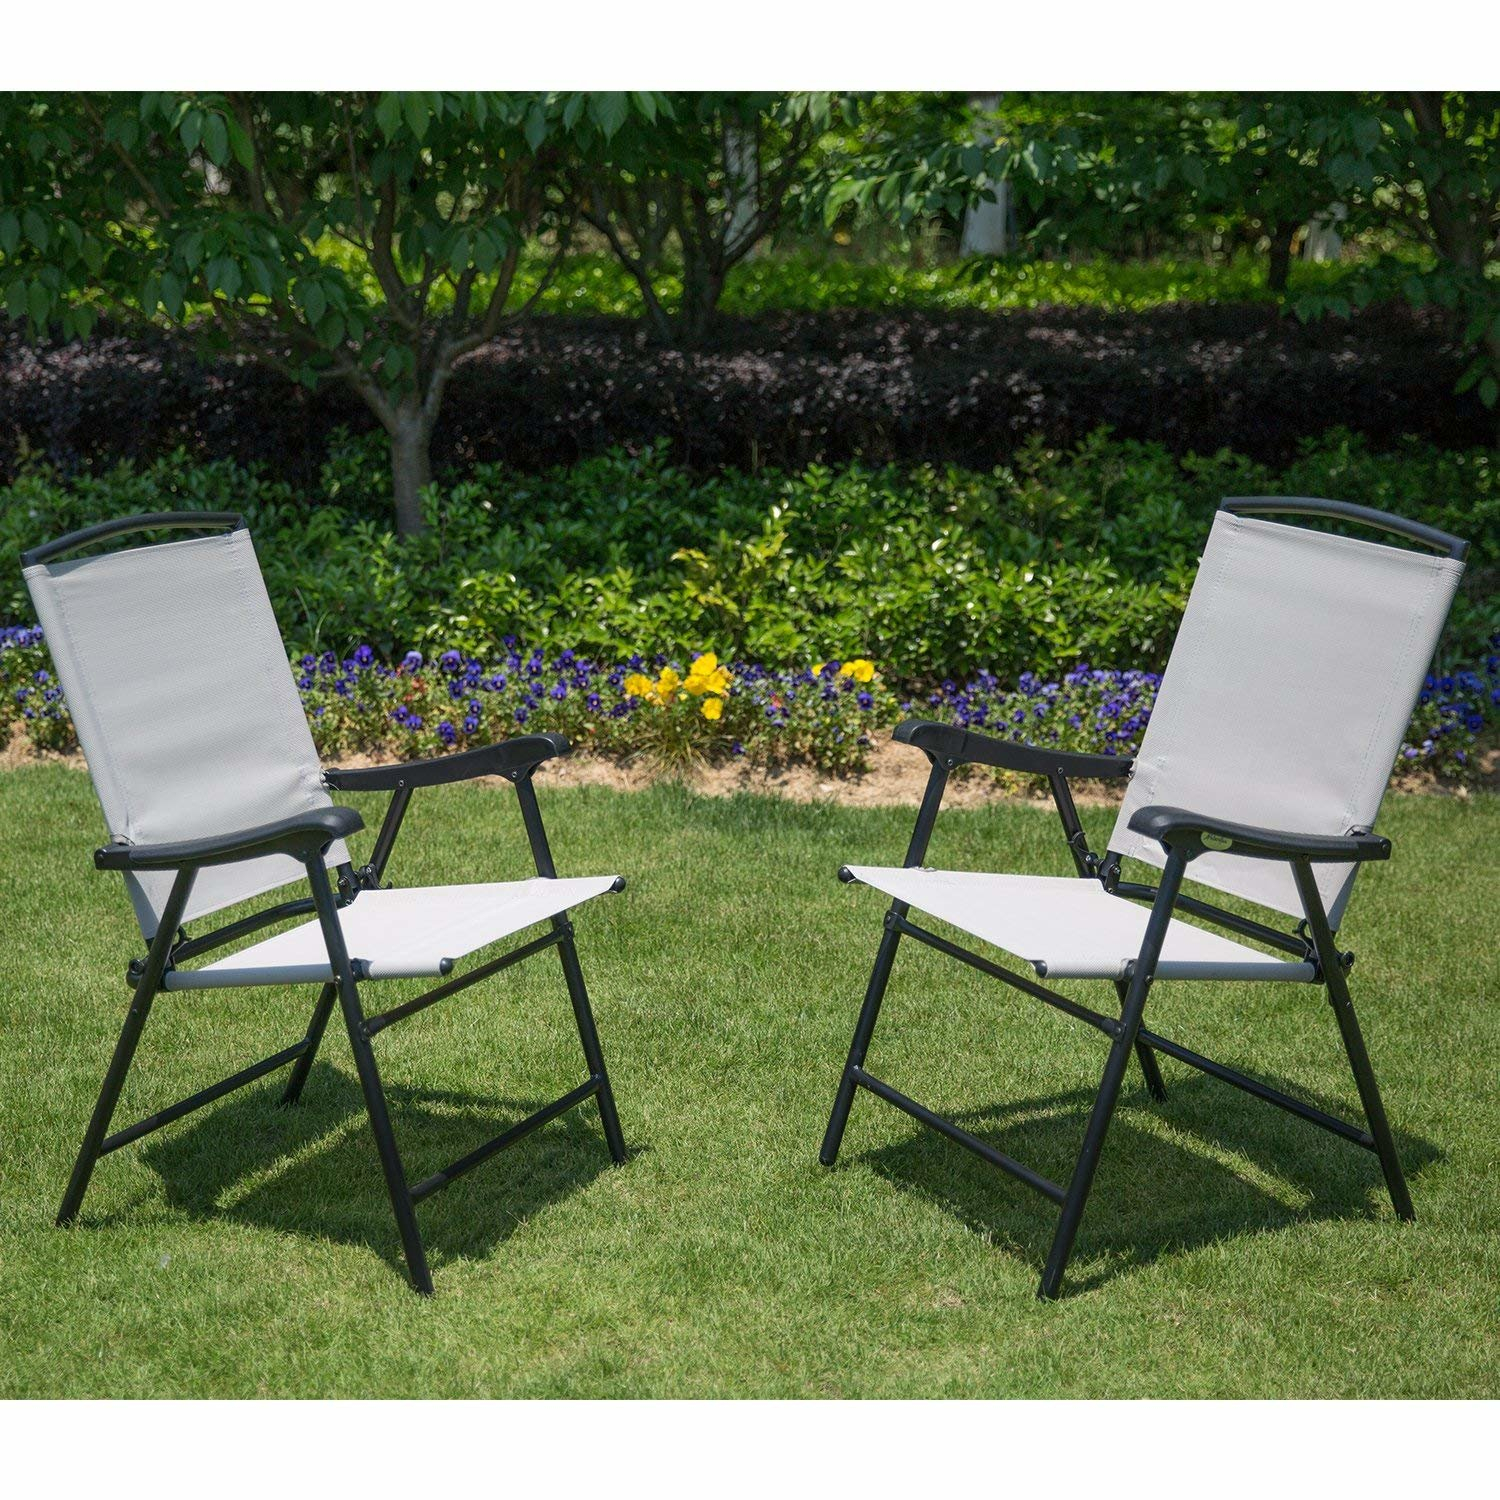 Details About Folding Patio Chair Set Of 2 Lawn Deck Chairs Metal Beige Fabric 300 Lb Capacity